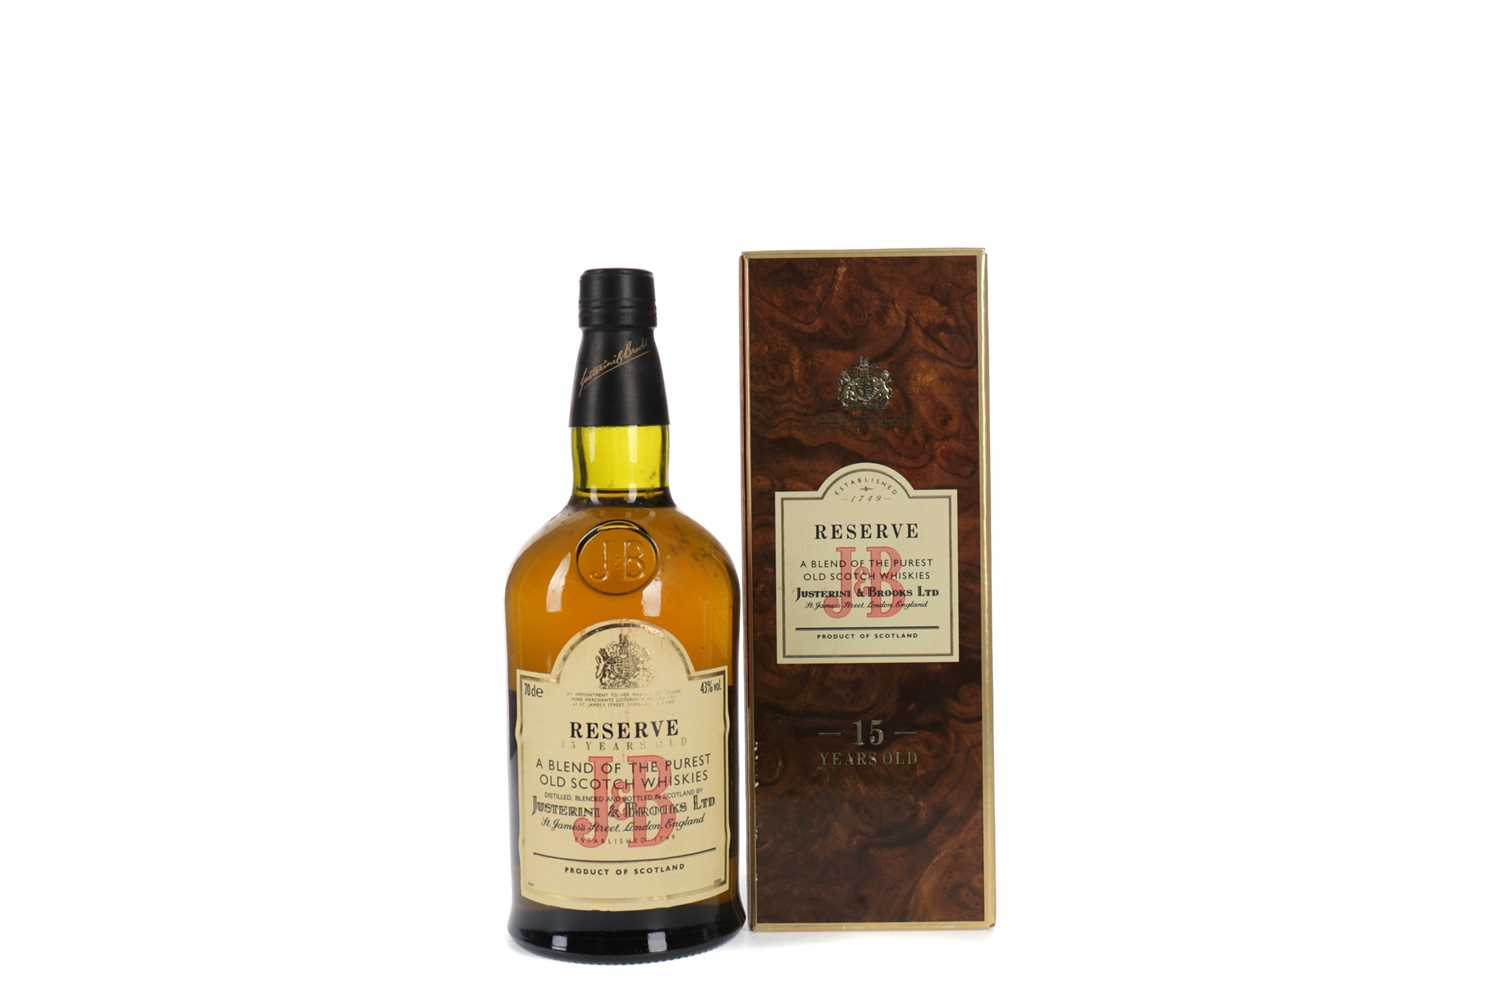 Lot 77 - J&B RESERVE 15 YEARS OLD